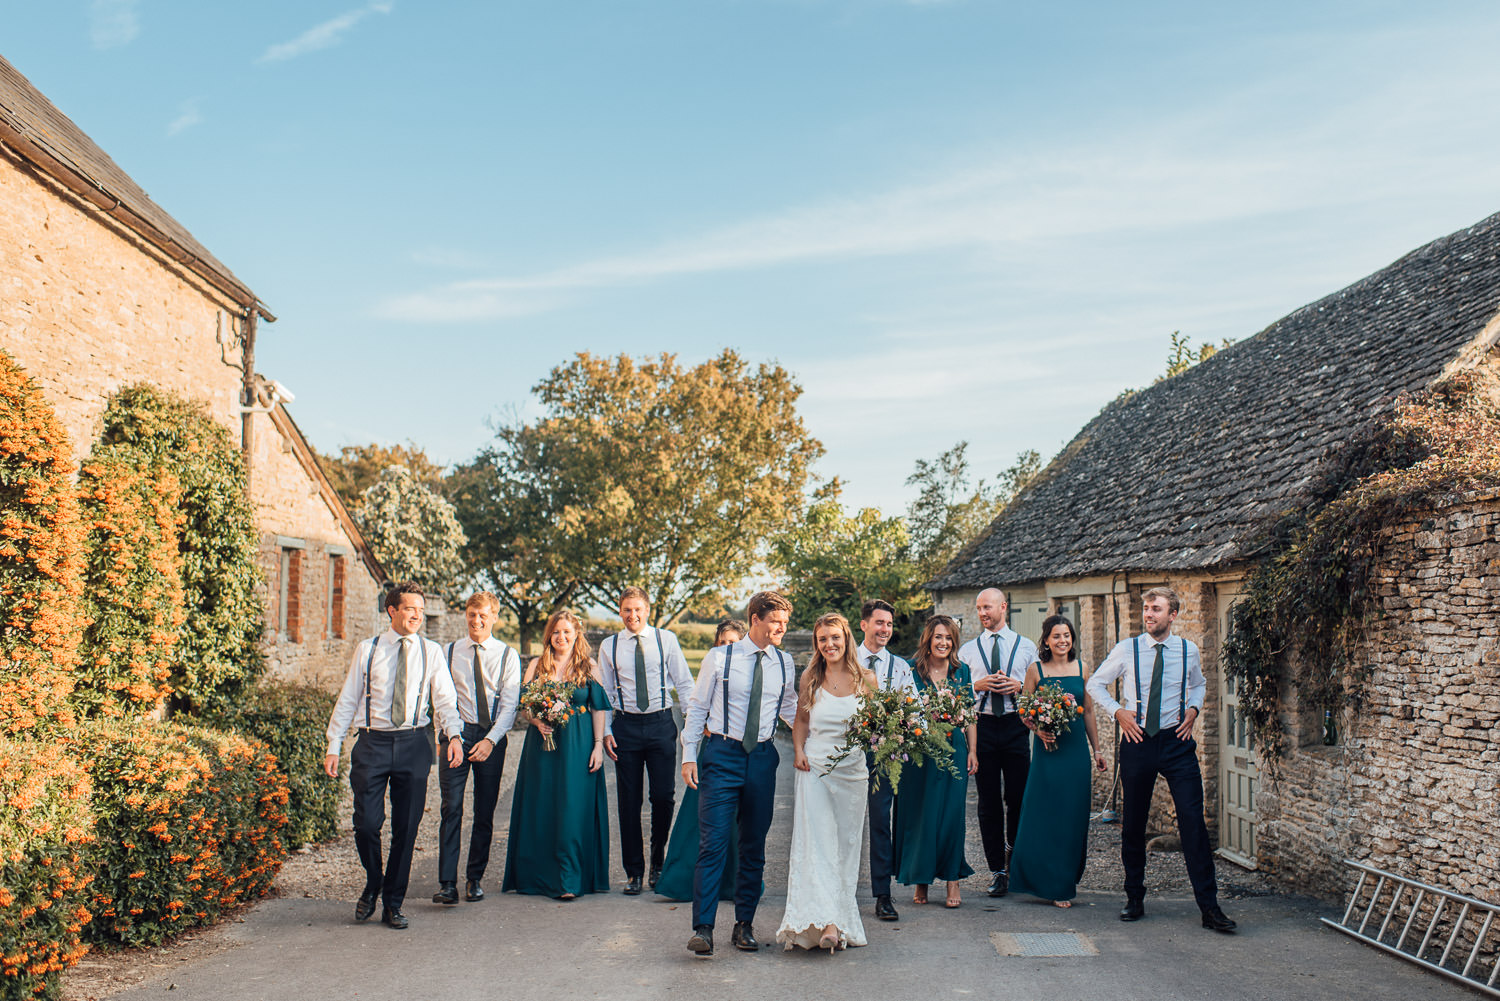 bridal party in oxleaze barn wedding